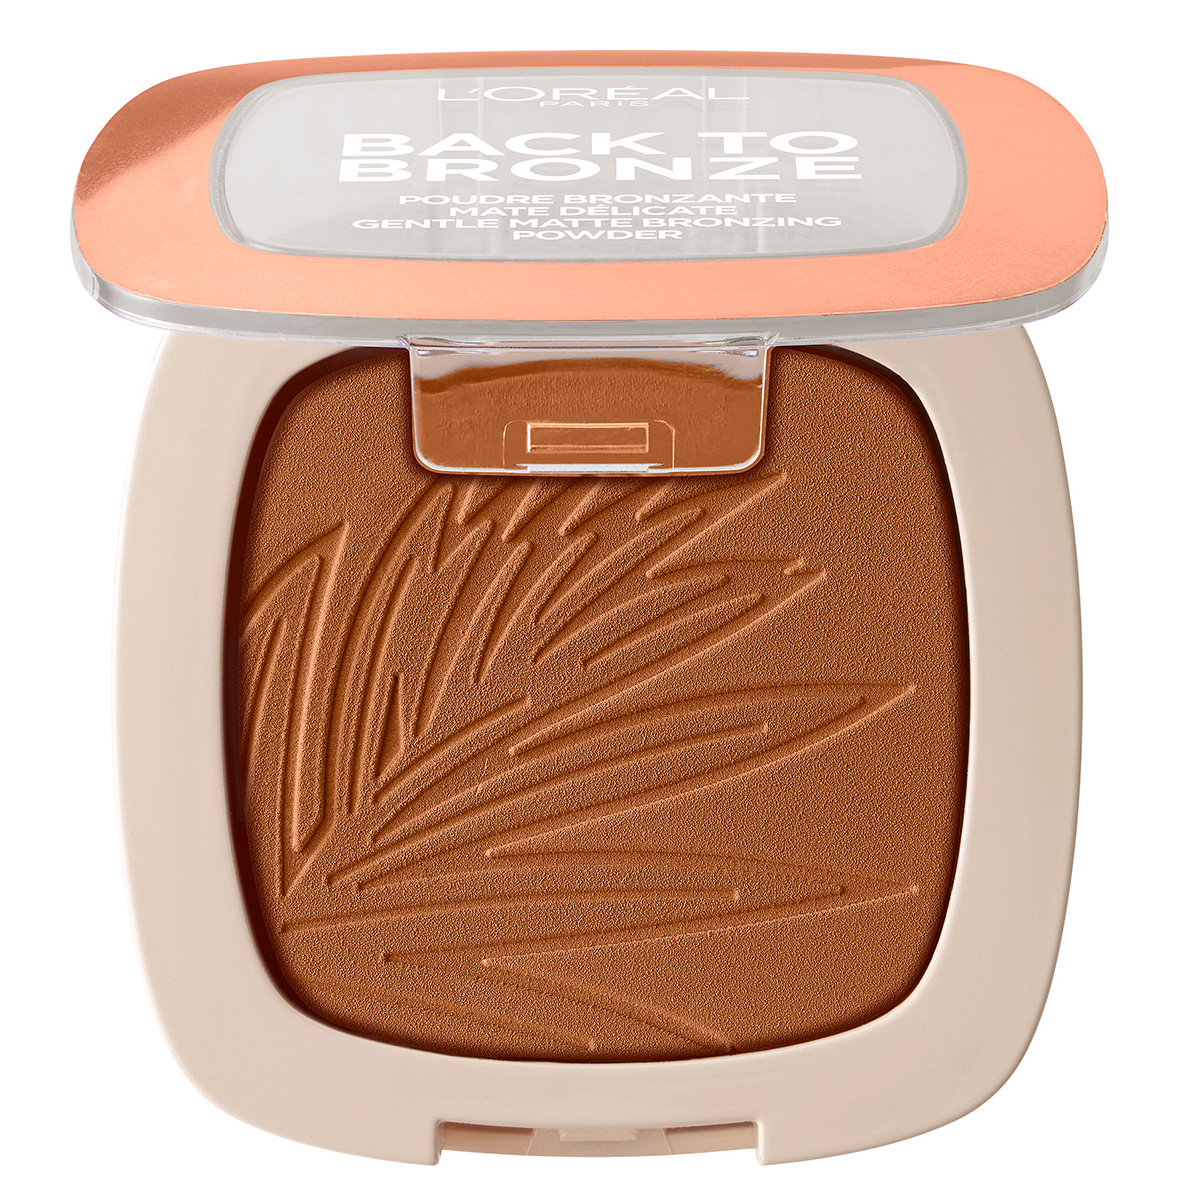 Billede af LOréal Paris Back to Bronze Matte Bronzing Powder